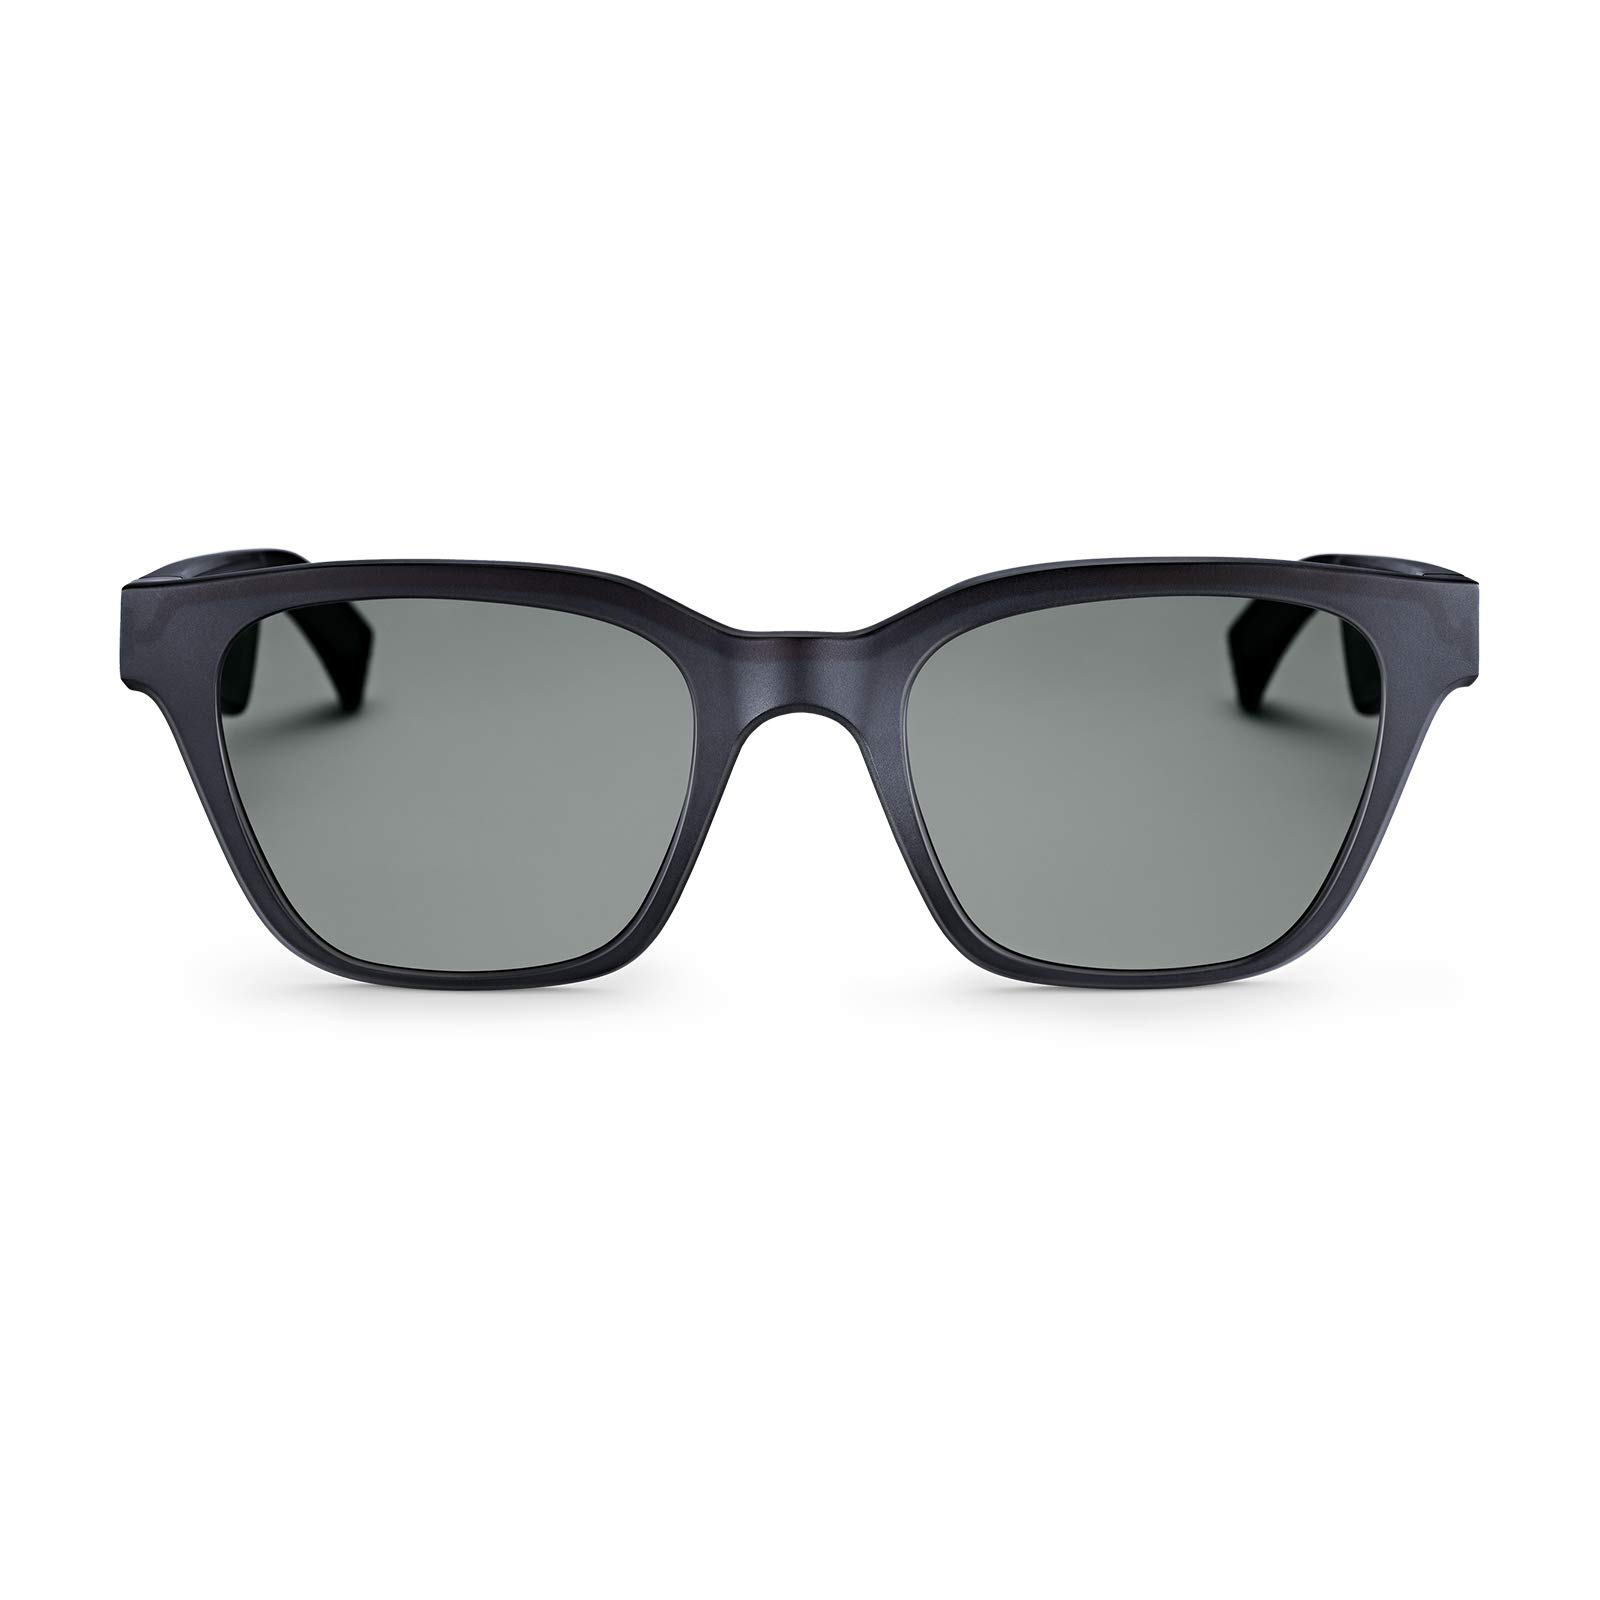 Bose Frames Audio Sunglasses, Alto, Black - with Bluetooth Connectivity , 52 mm by Bose